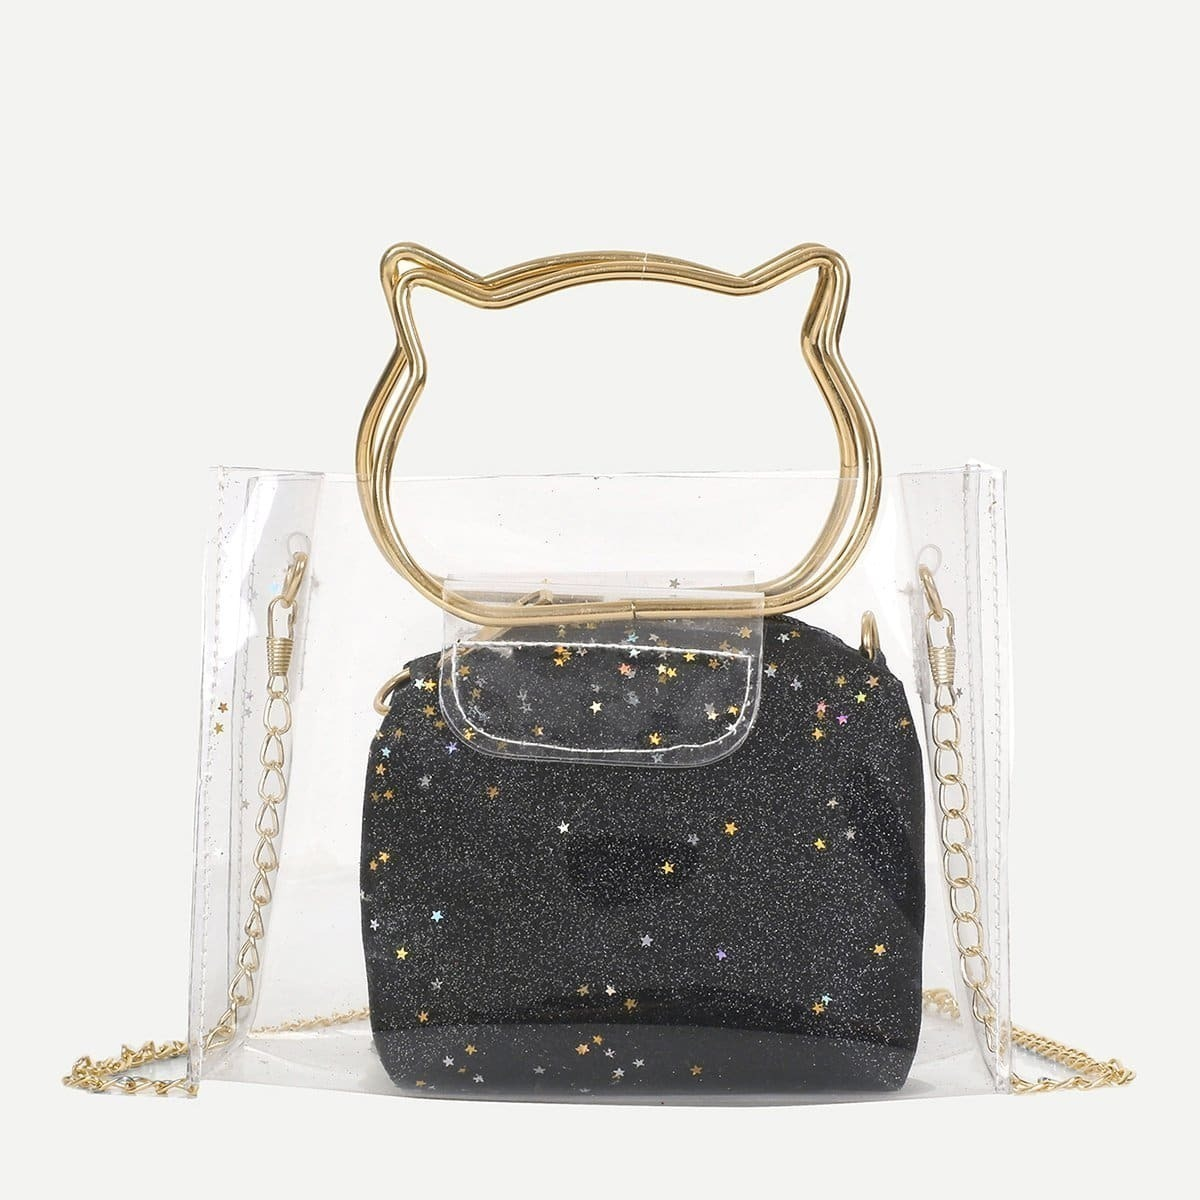 - Clear PVC Bag With Glitter Inner Pouch